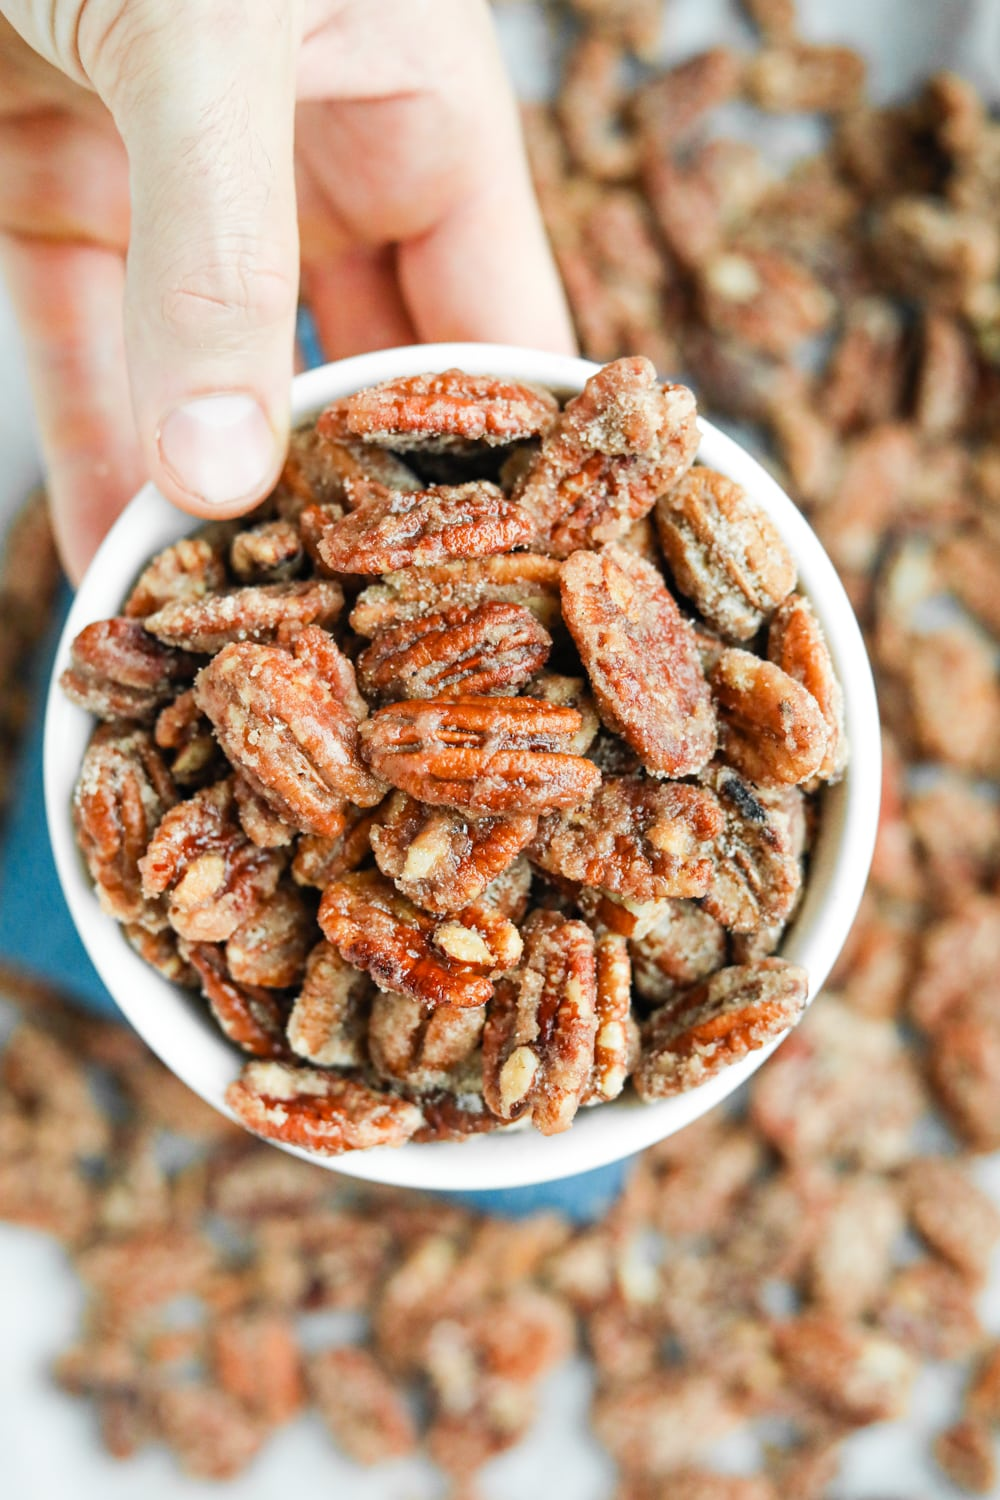 A hand holding a white bowl filled with candied pecans.